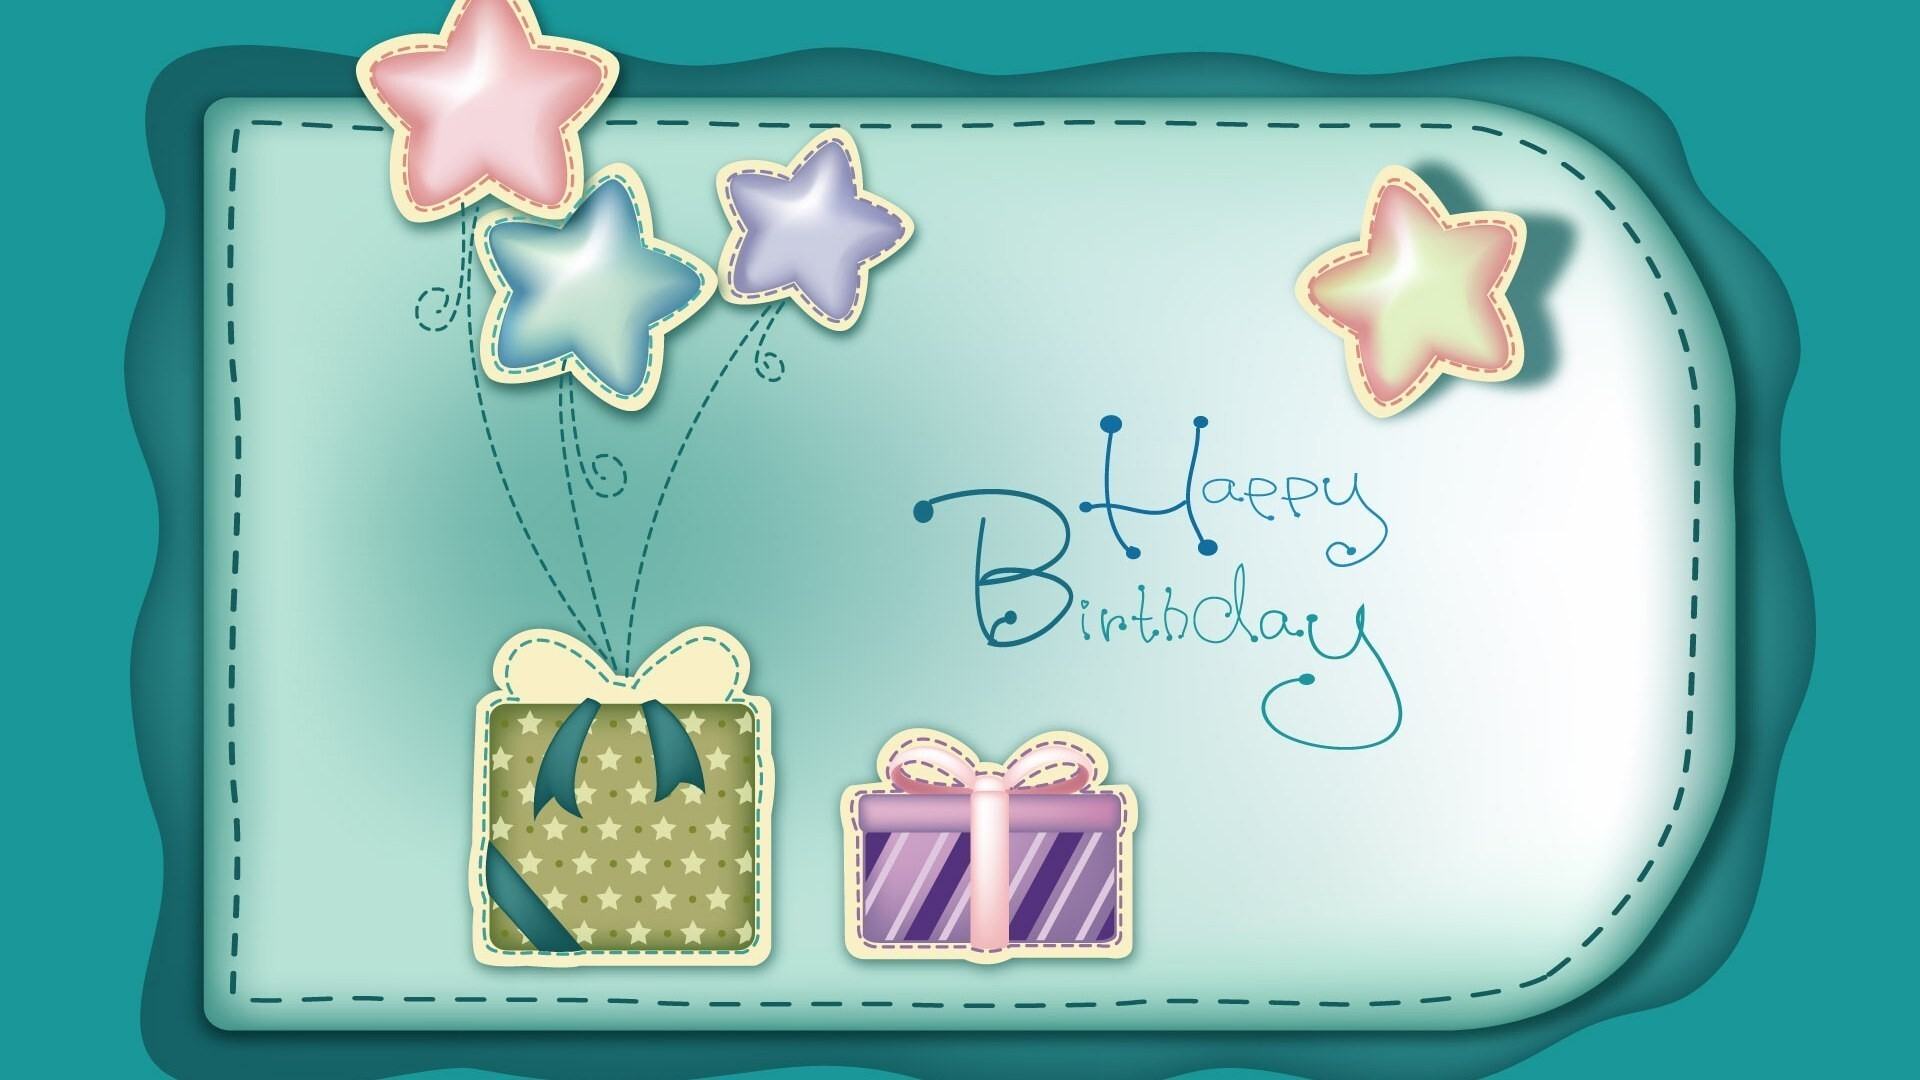 Beautiful Birthday Wallpaper : Beautiful Birthday Card Photos for Desktop Laptop  HD Wallpapers